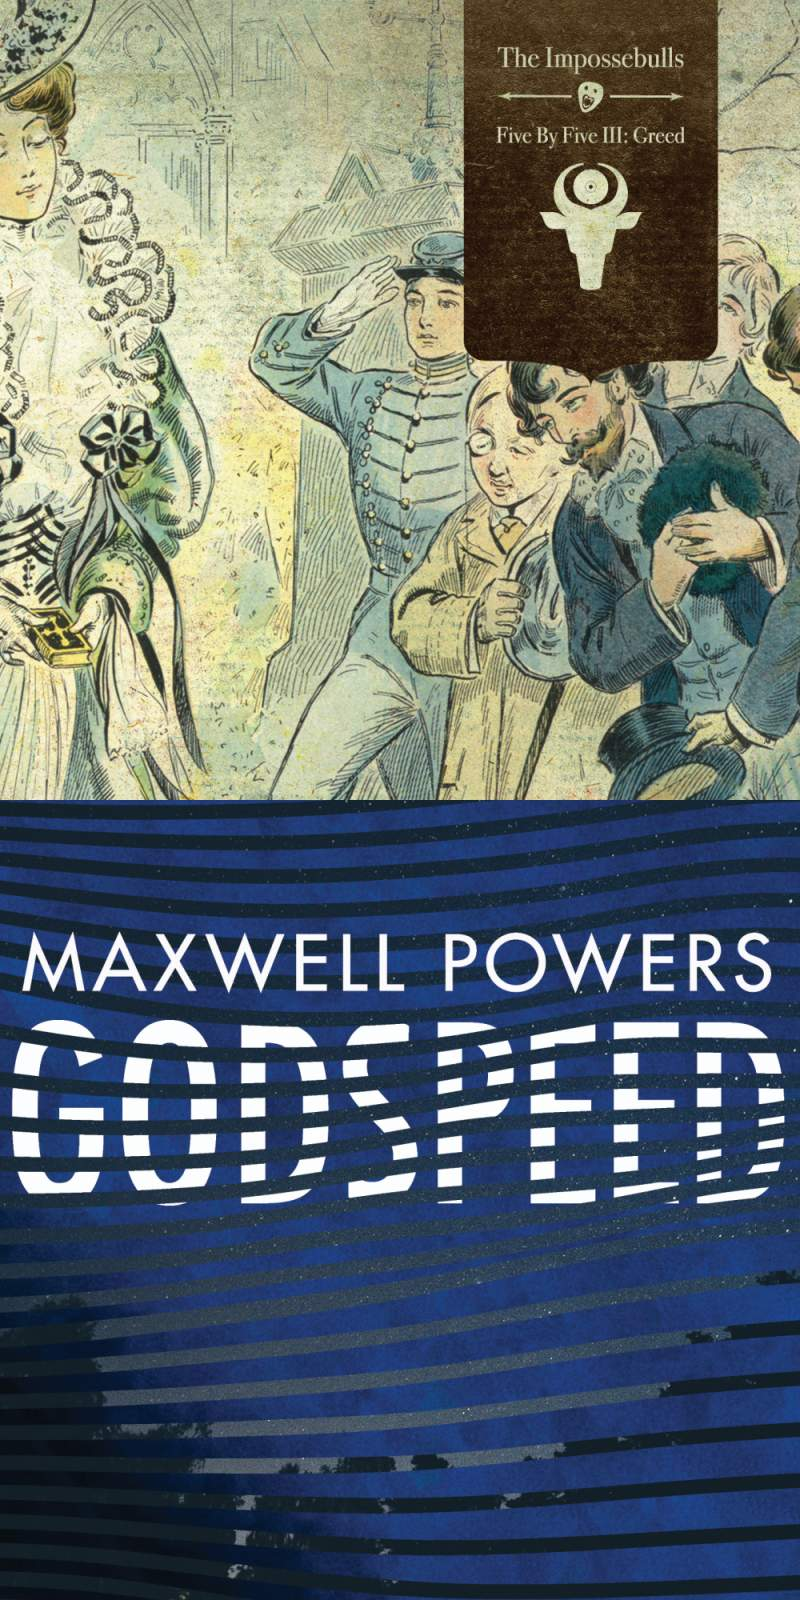 The Impossebulls and Maxwell Powers